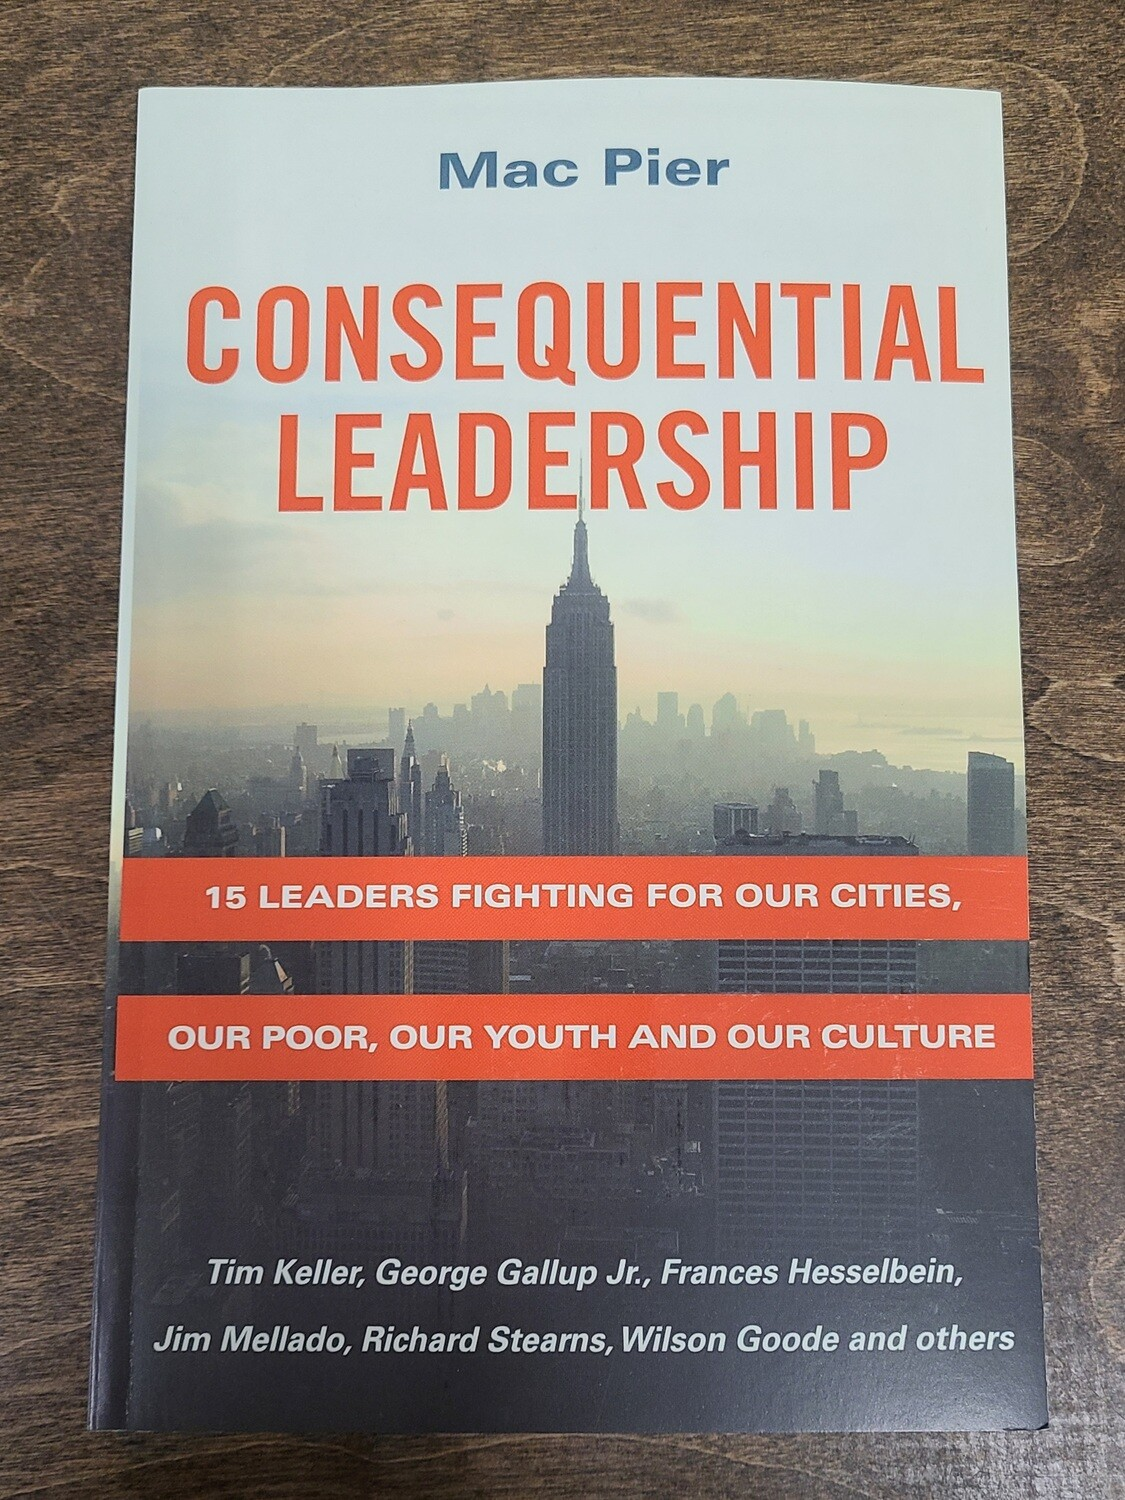 Consequential Leadership by Mac Pier